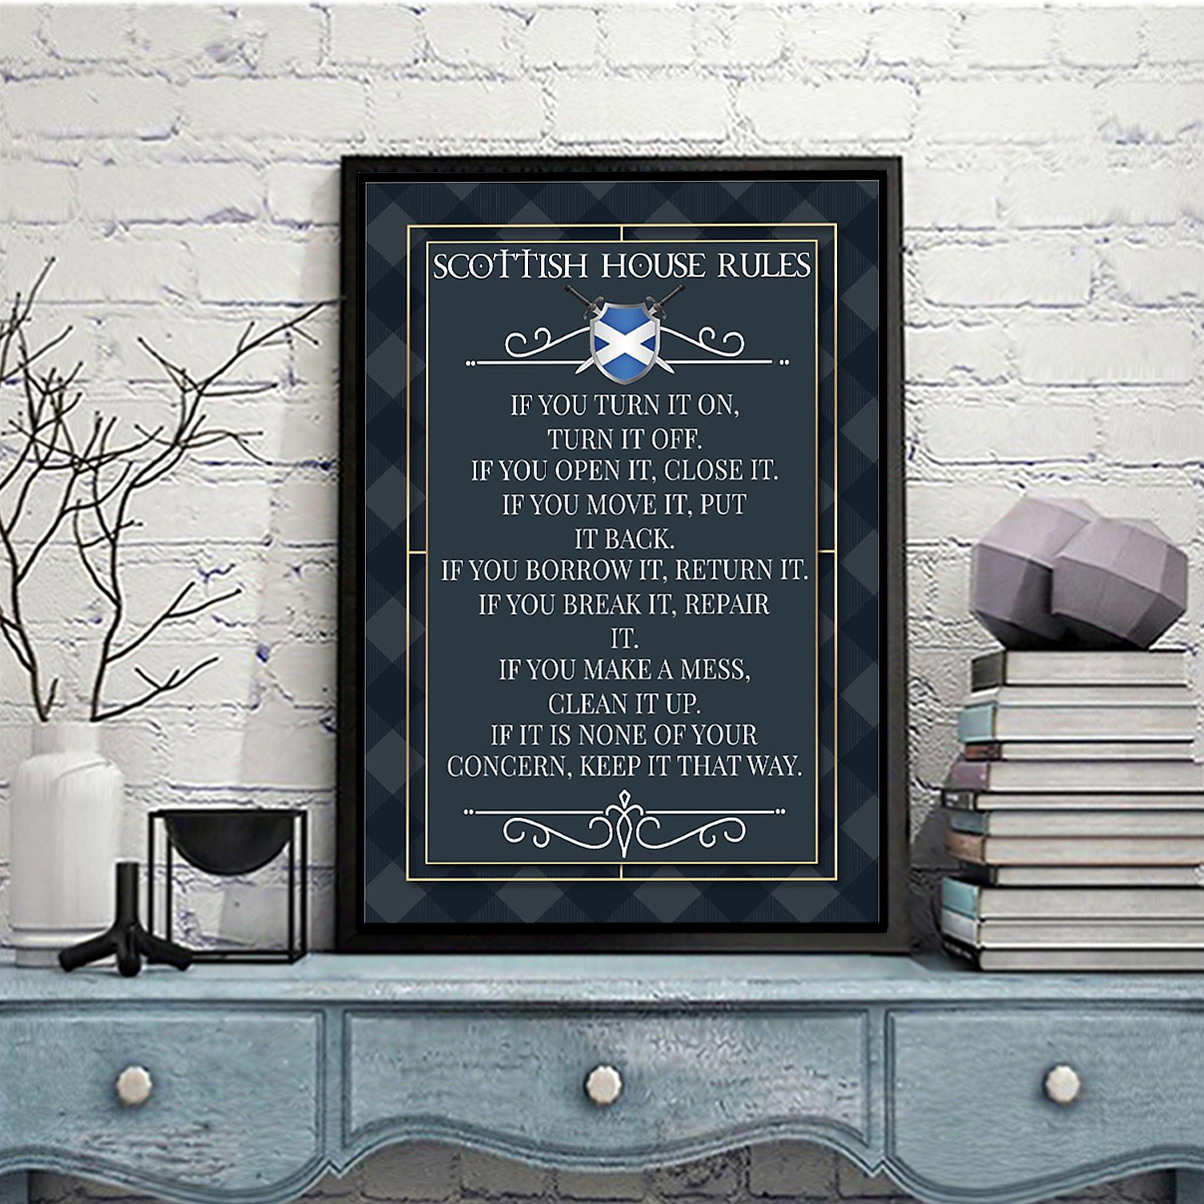 Scottish house rules poster A3